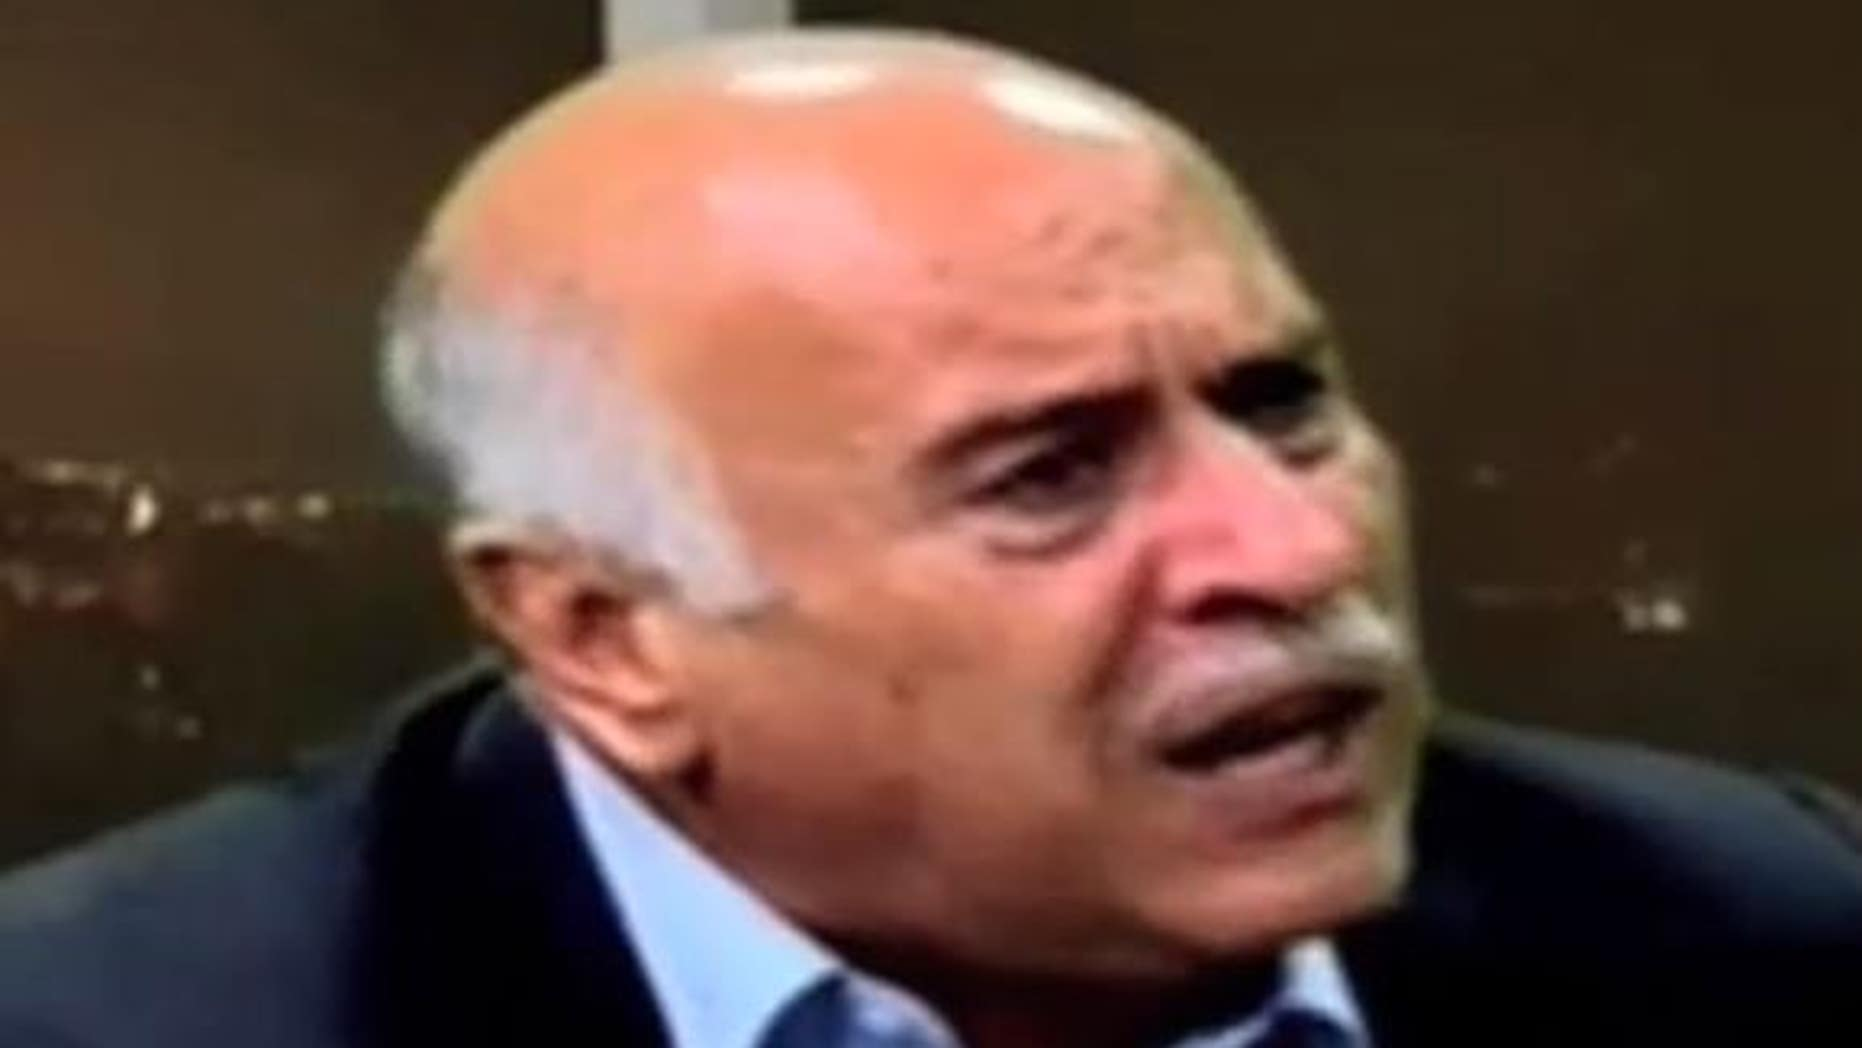 Controversial Secretary General of the Fatah Central Committee, Jibril Rajoub allowed to enter the U.S. next week